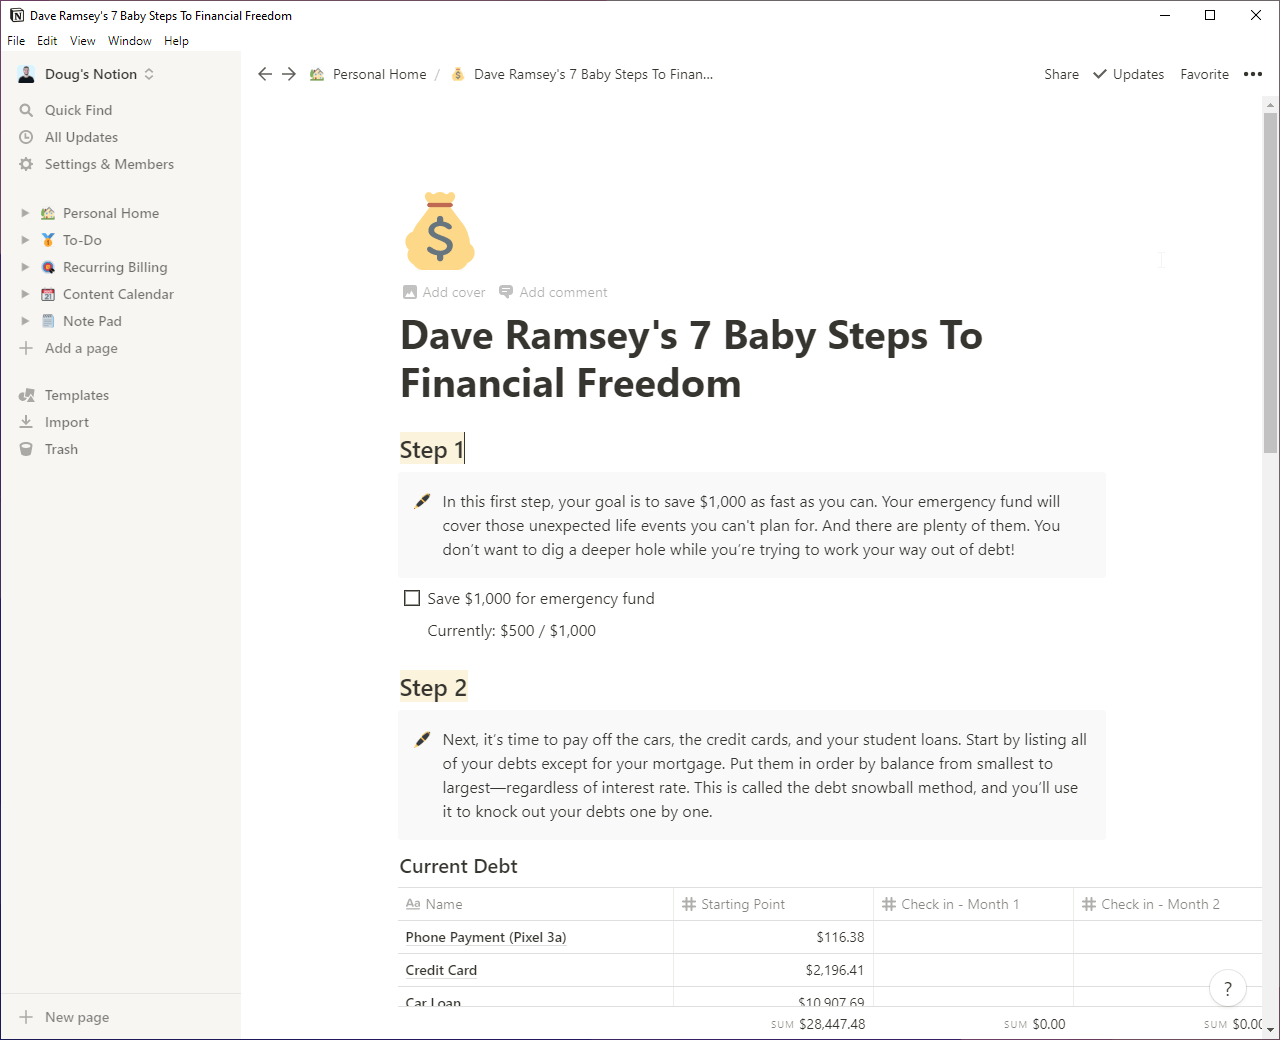 Dave Ramsey's 7 Baby Steps To Financial Freedom